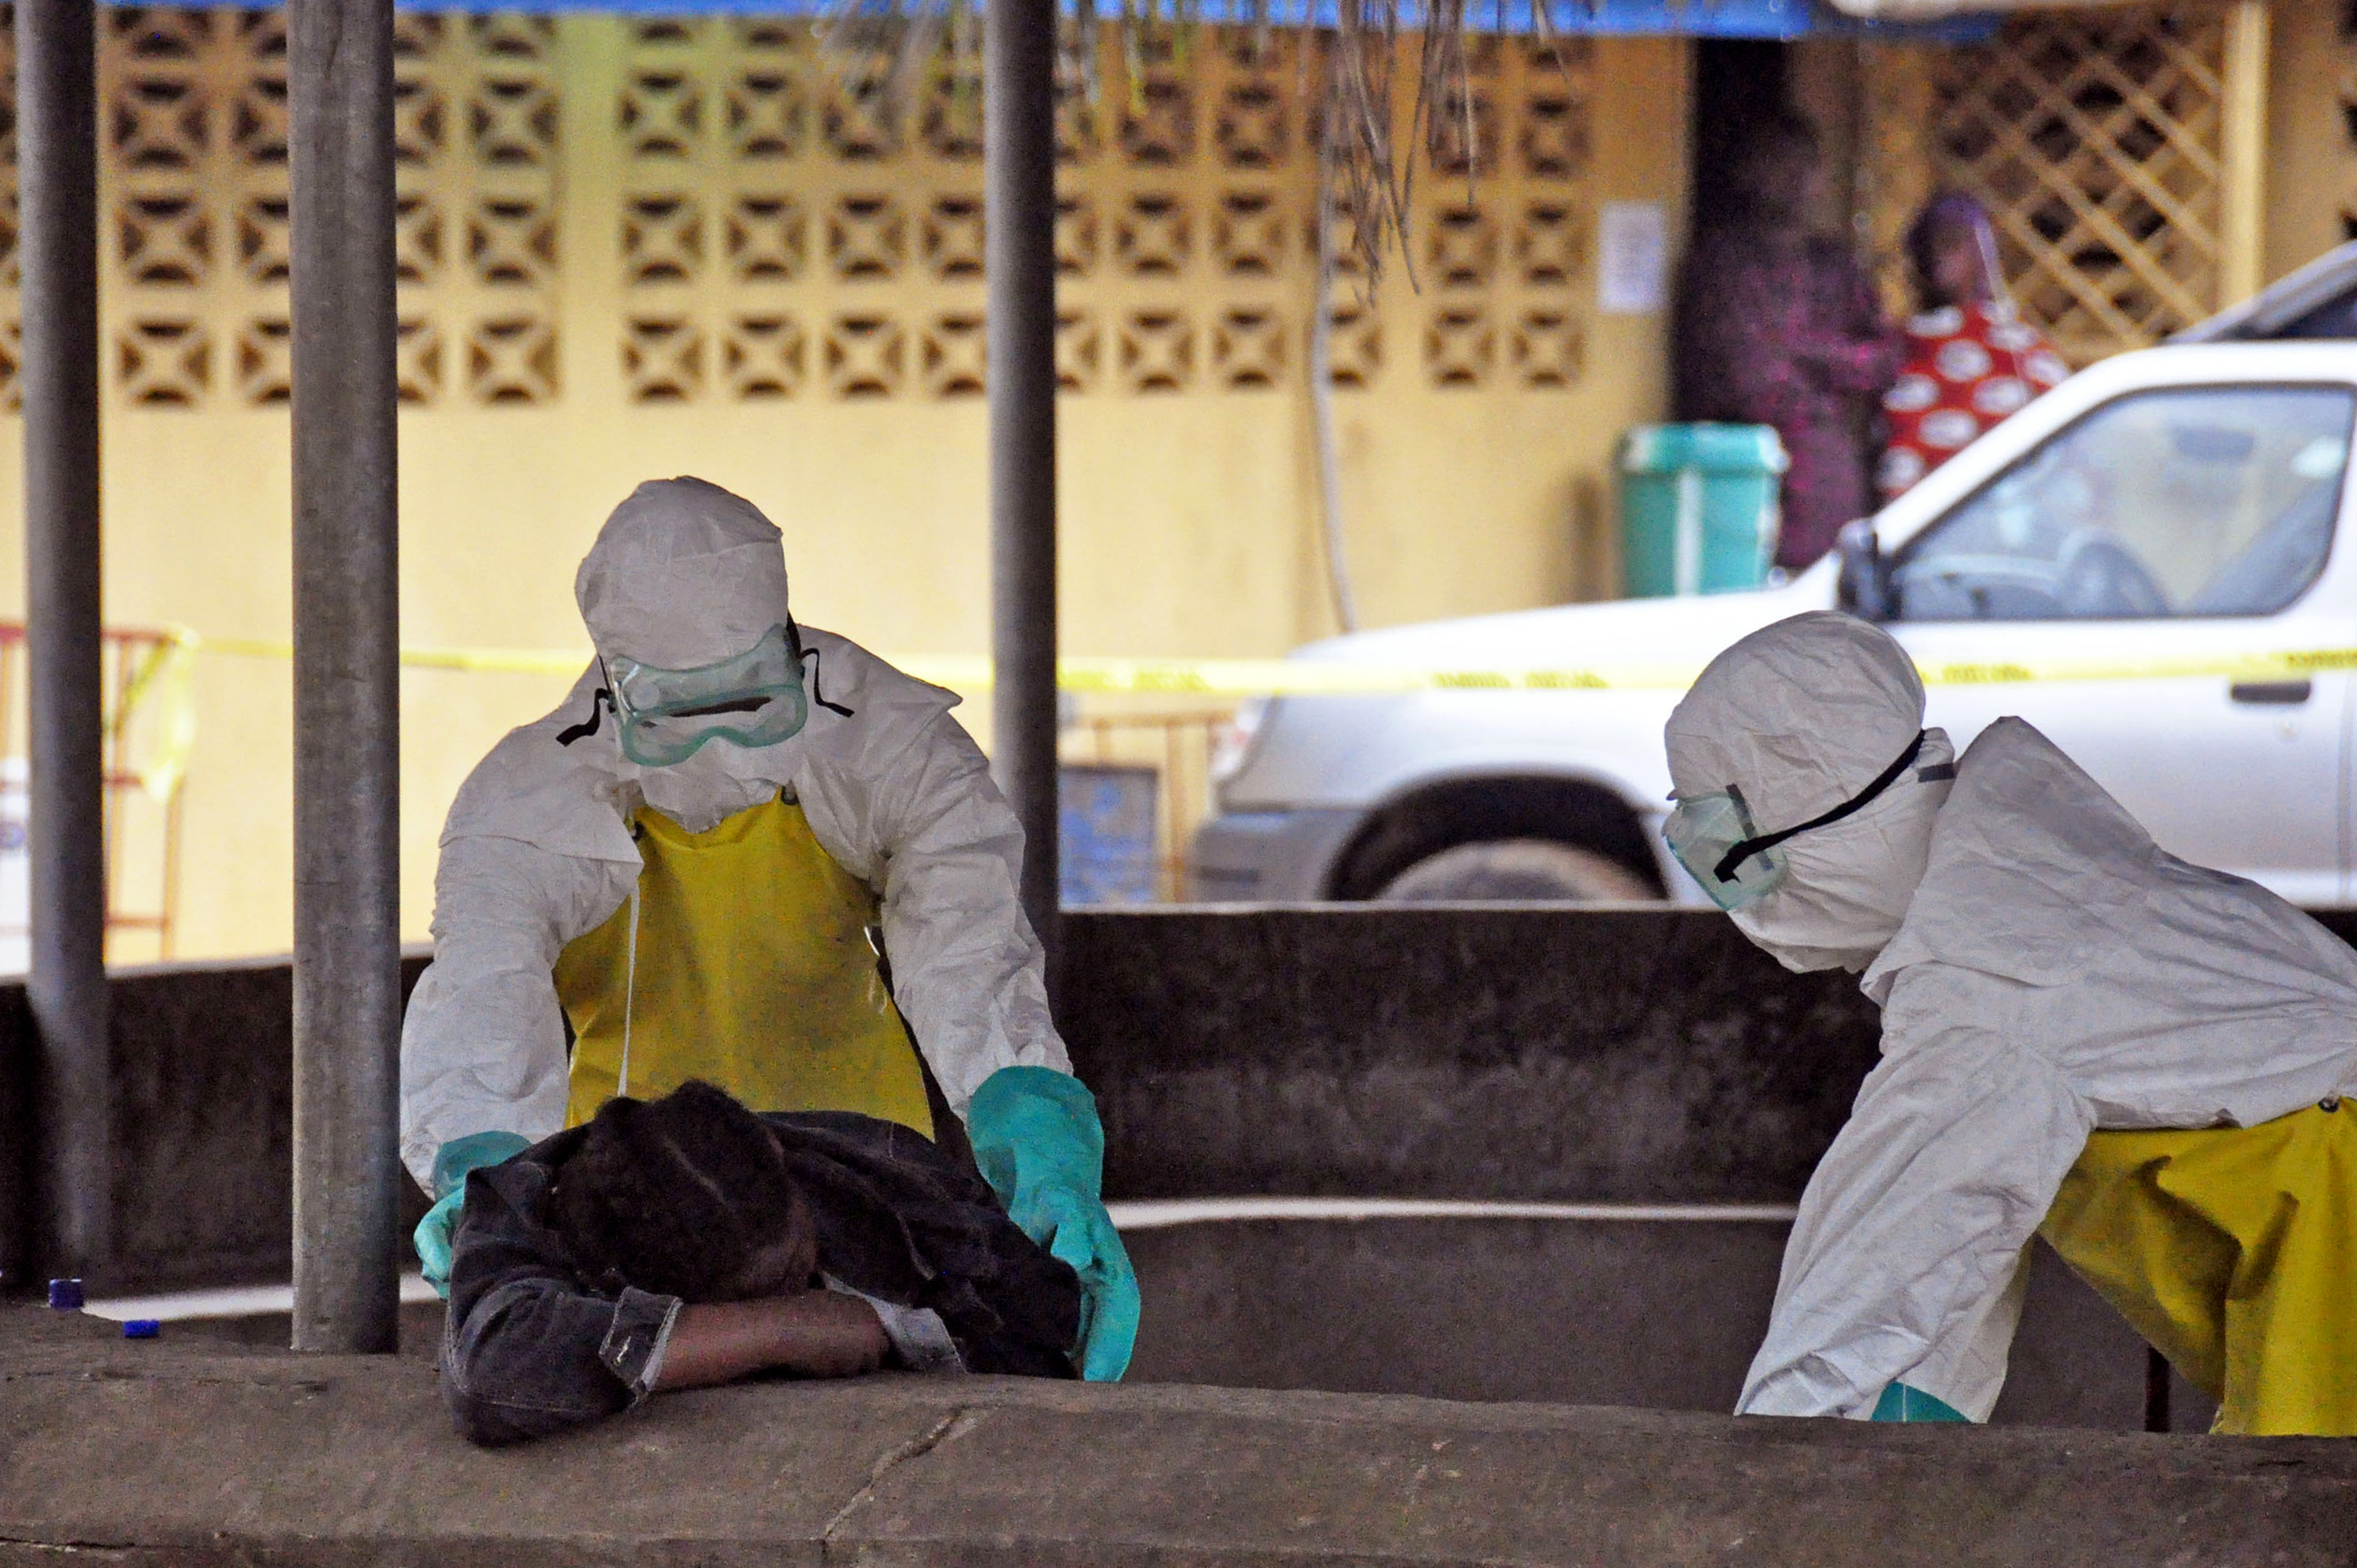 Health workers move the body of a fellow health worker who was found dead in a seat, and who they believe passed away from the Ebola virus, at one of the largest hospitals in the city of Monrovia, Liberia, Saturday, Aug. 16, 2014. Photo credit: AP Photo/Abbas Dulleh